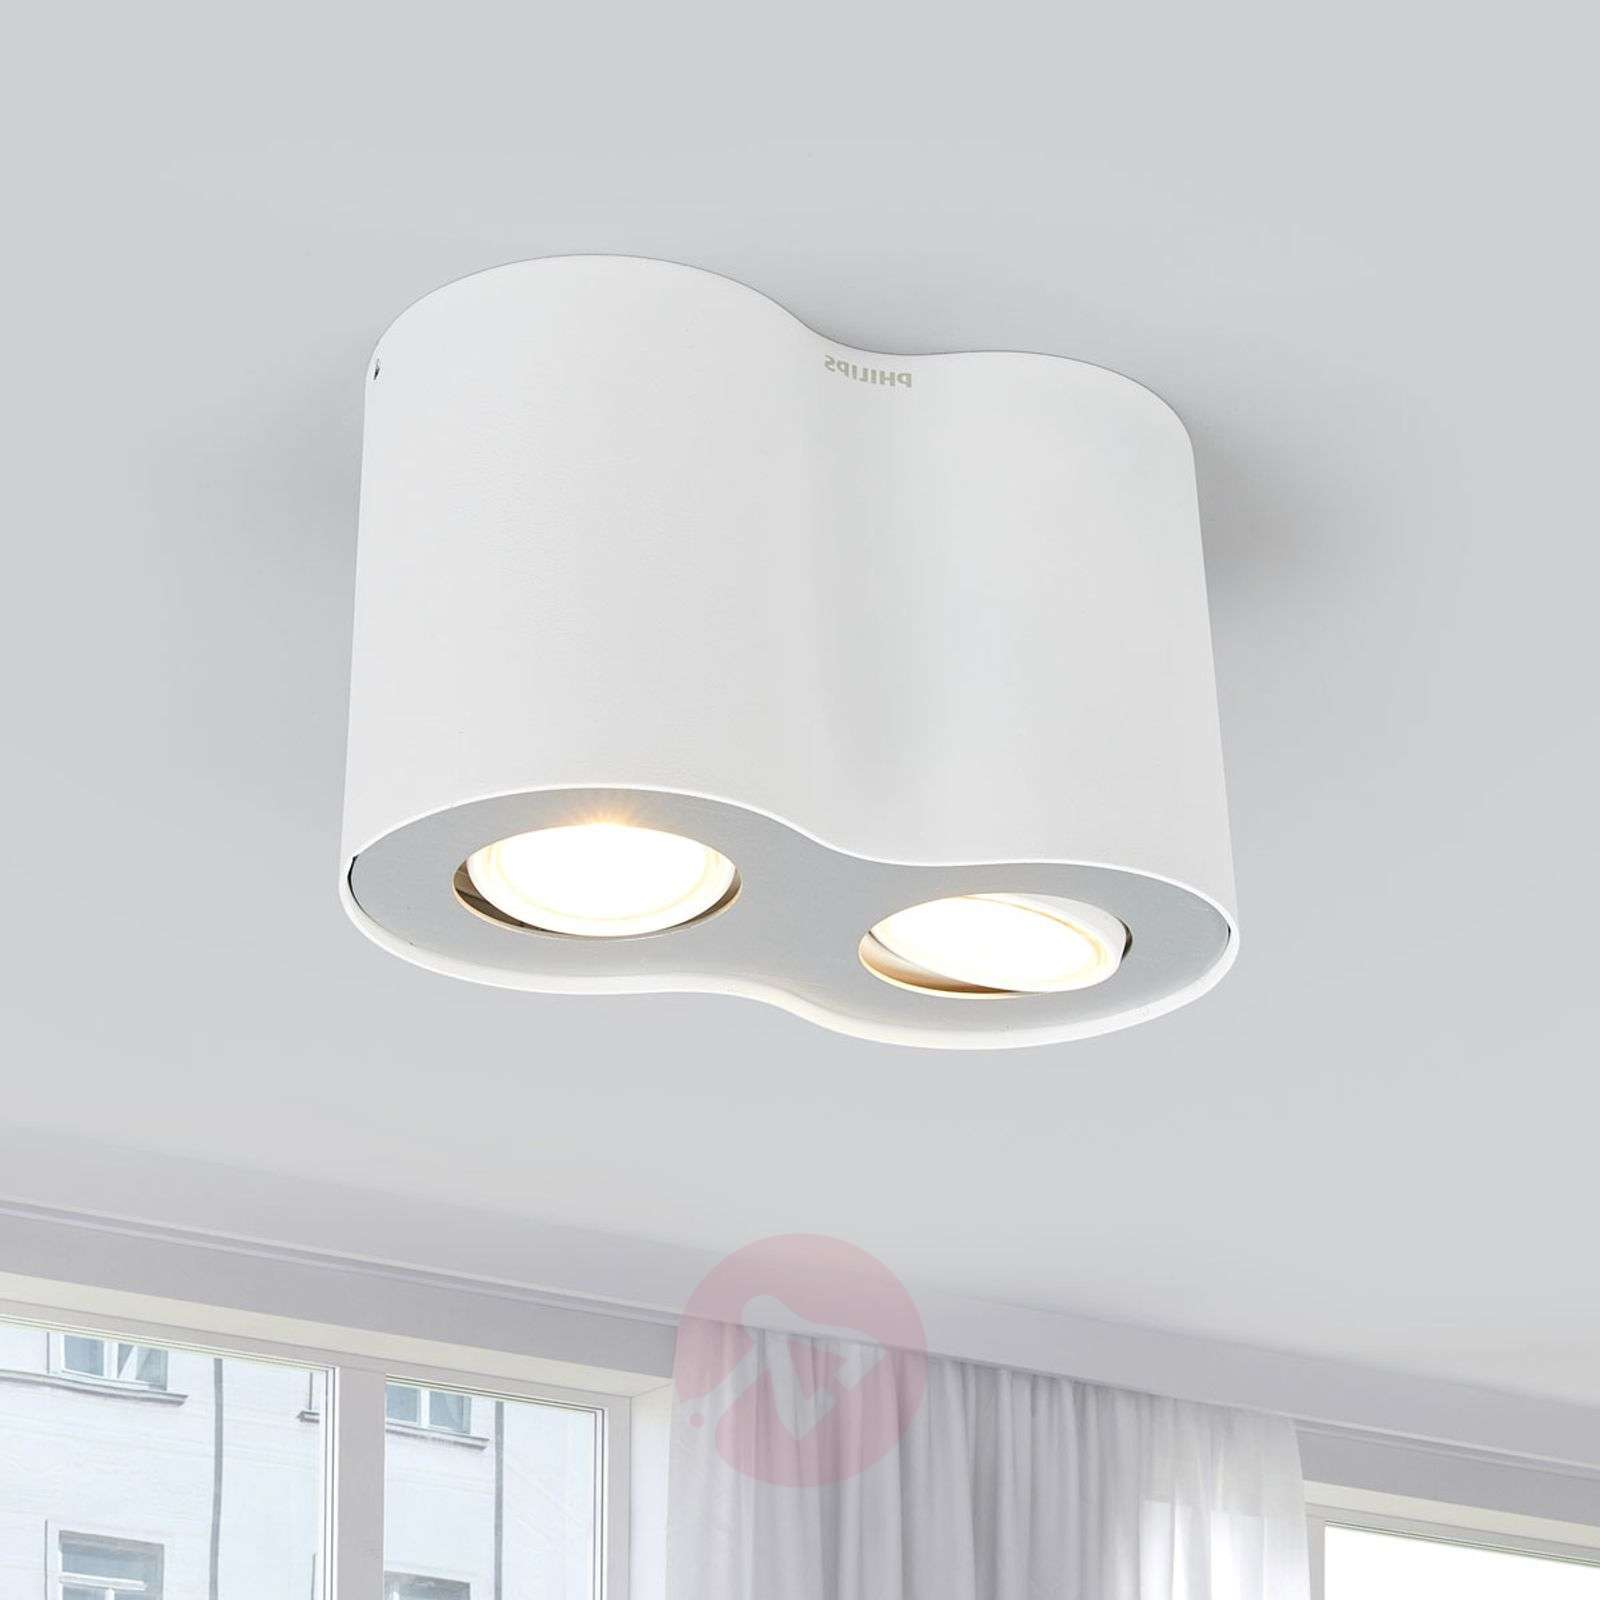 ceiling mounted light how to change bulb